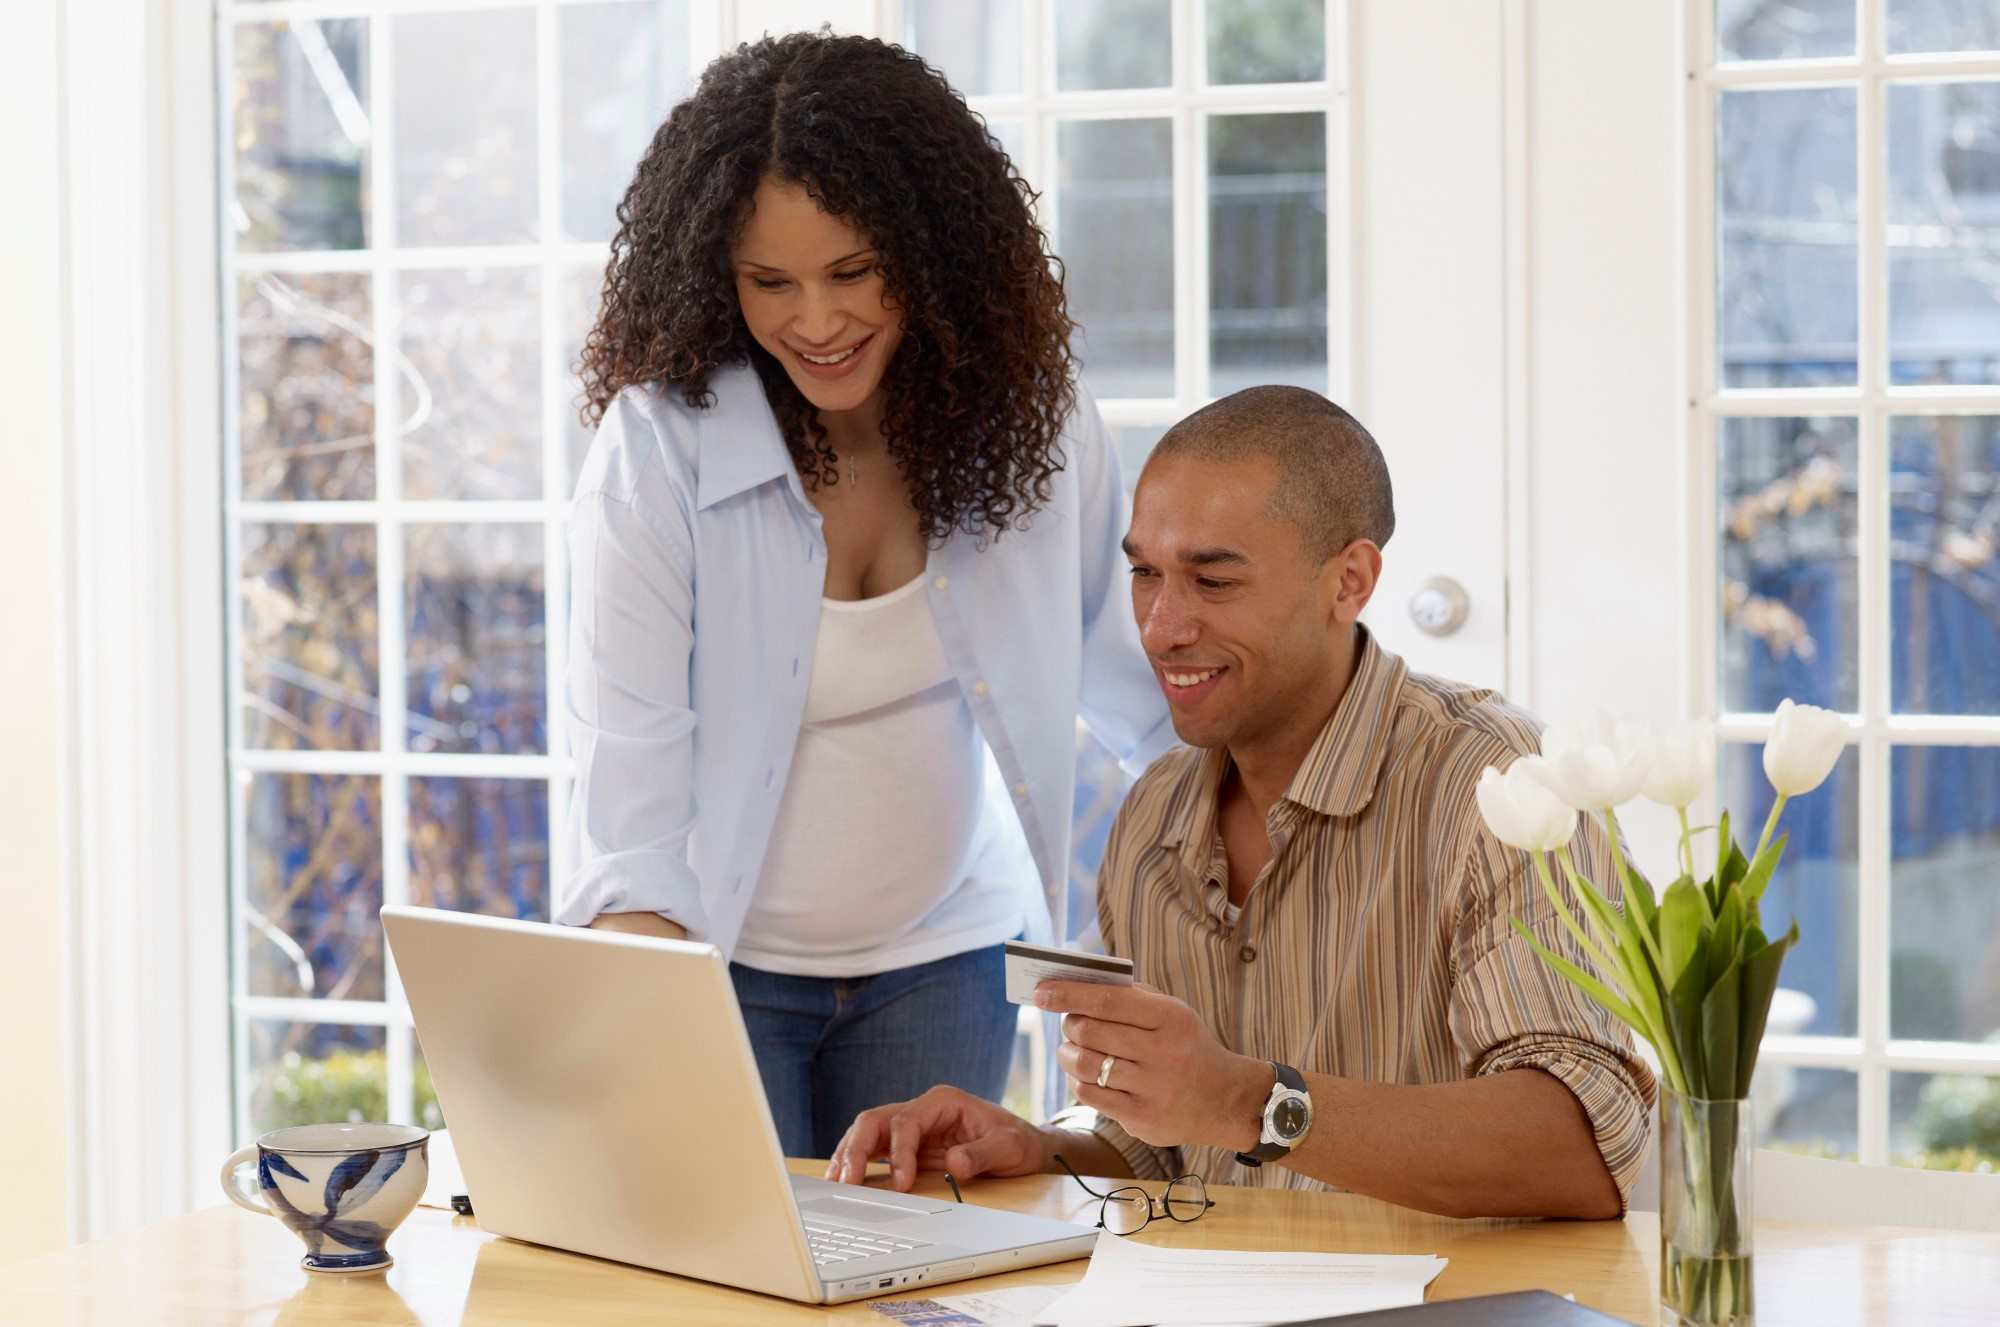 Man holding credit card and looking at laptop with a woman